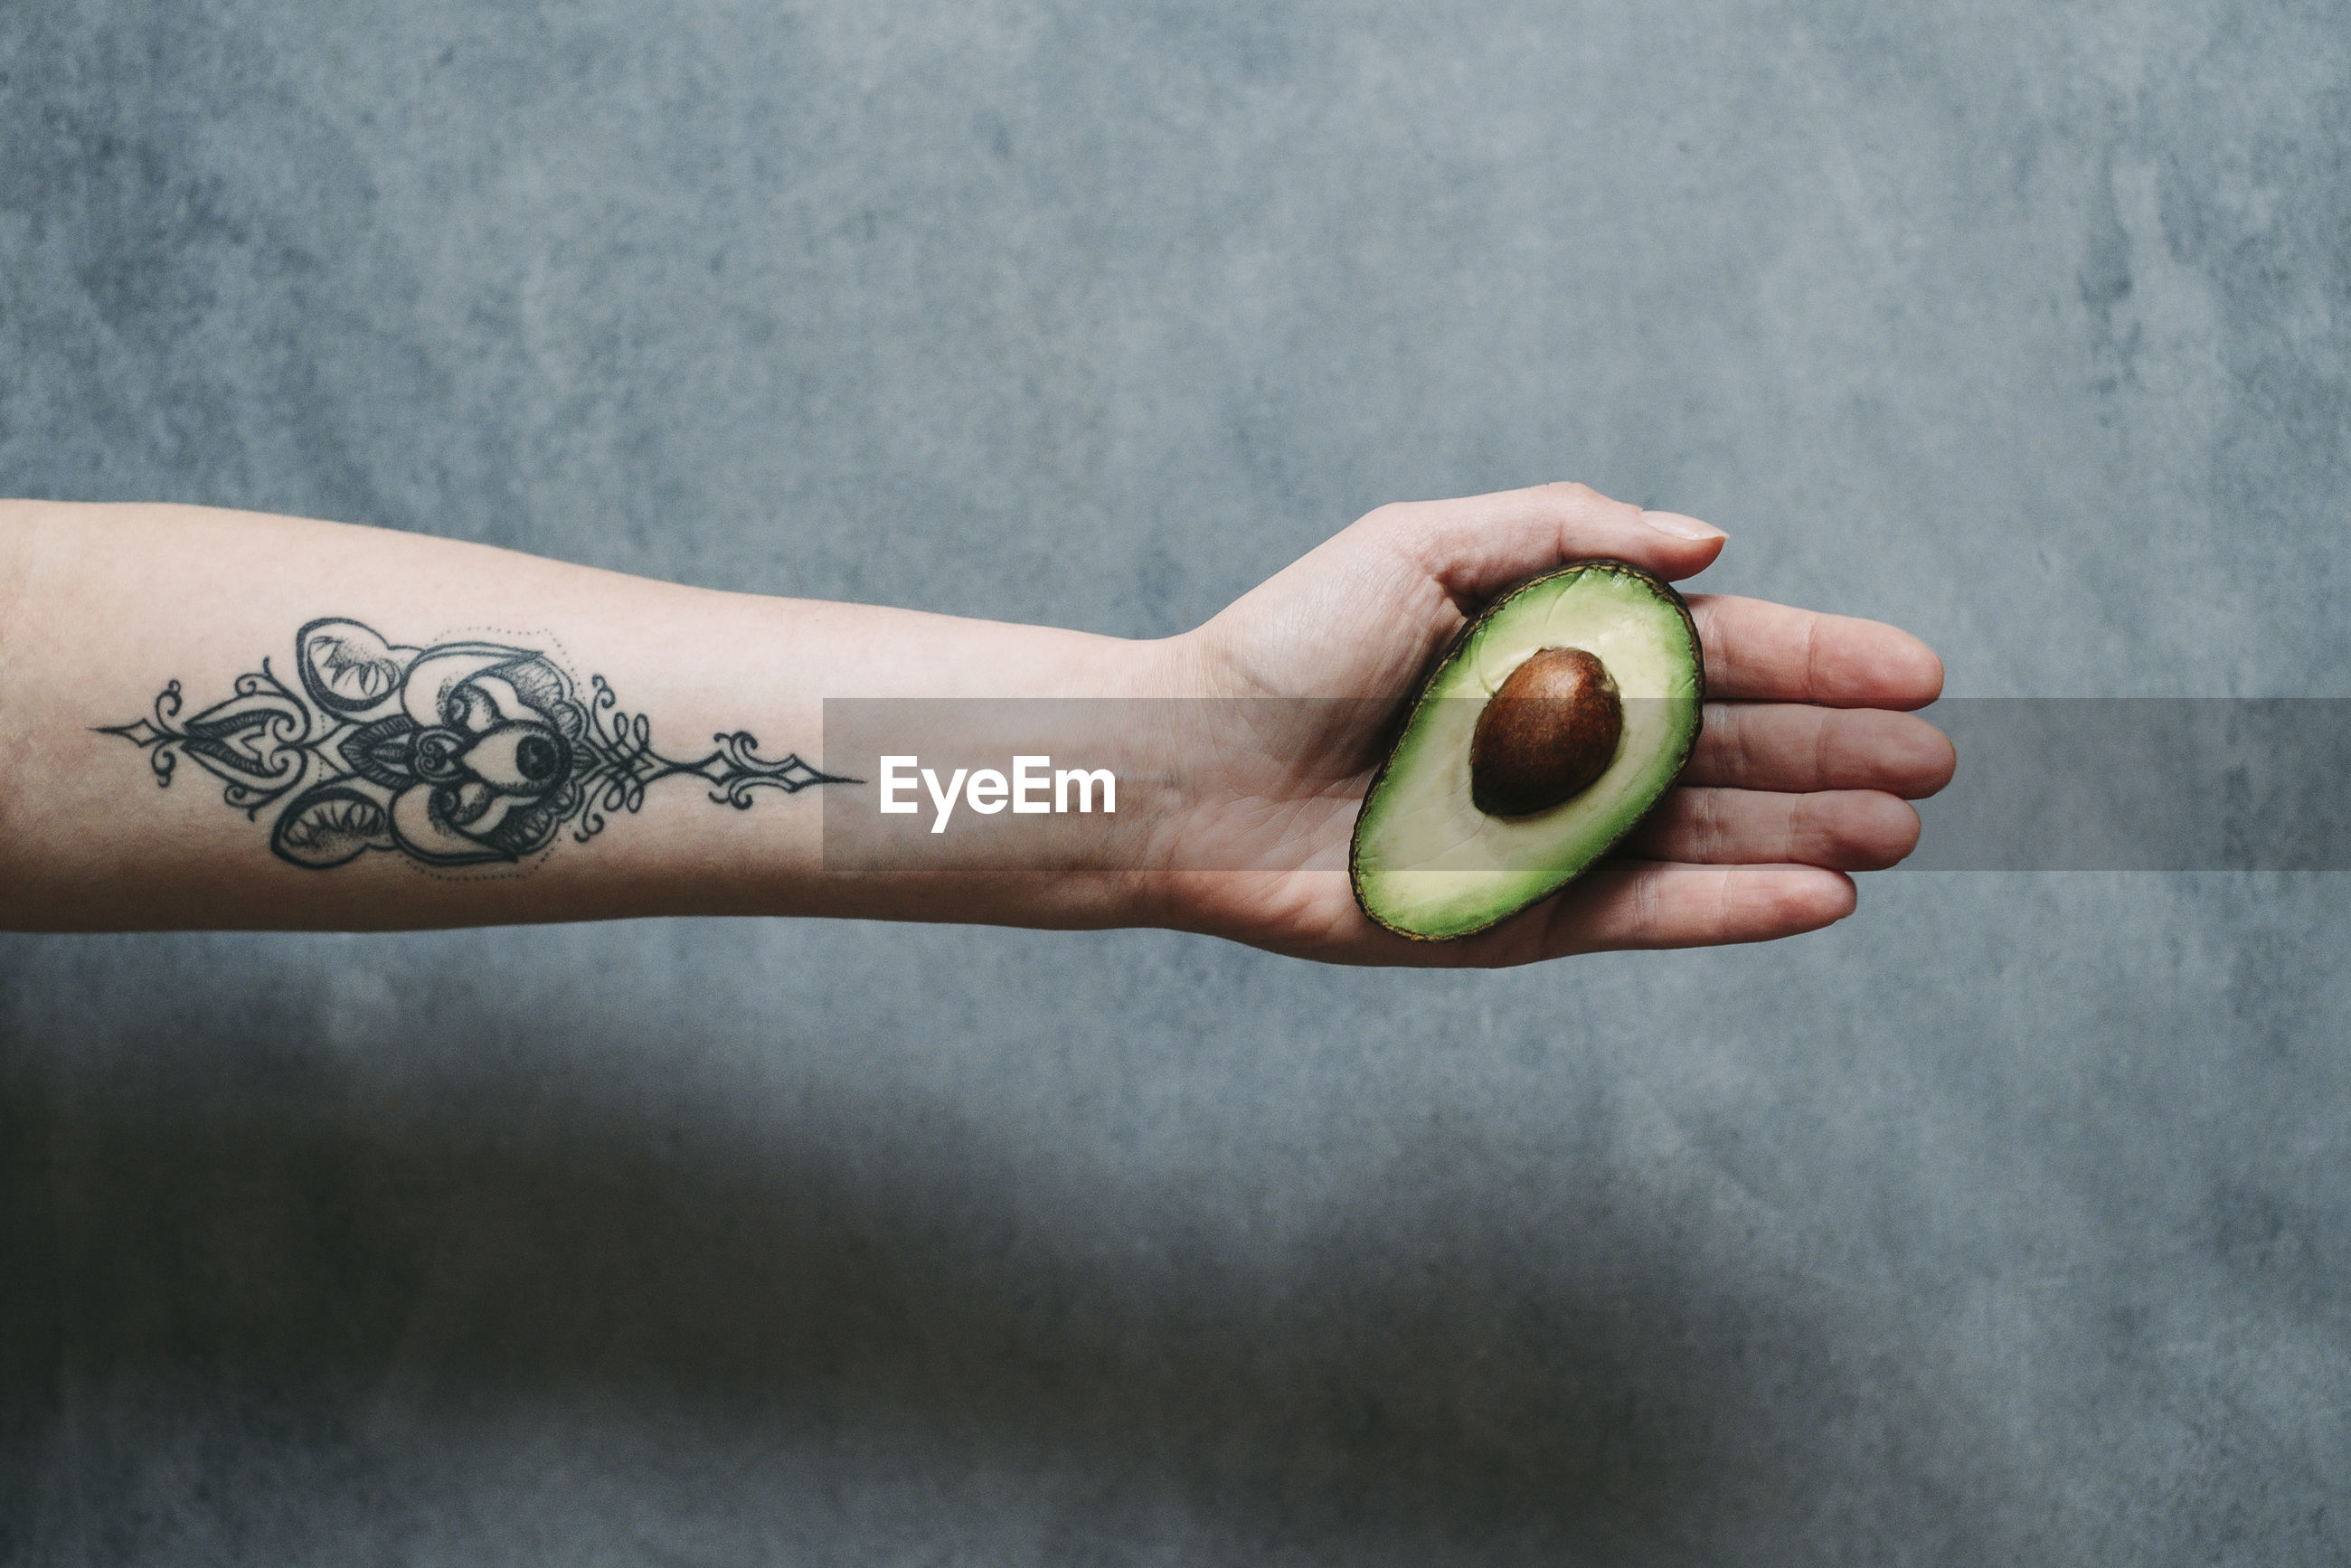 Cropped hand holding avocado against wall